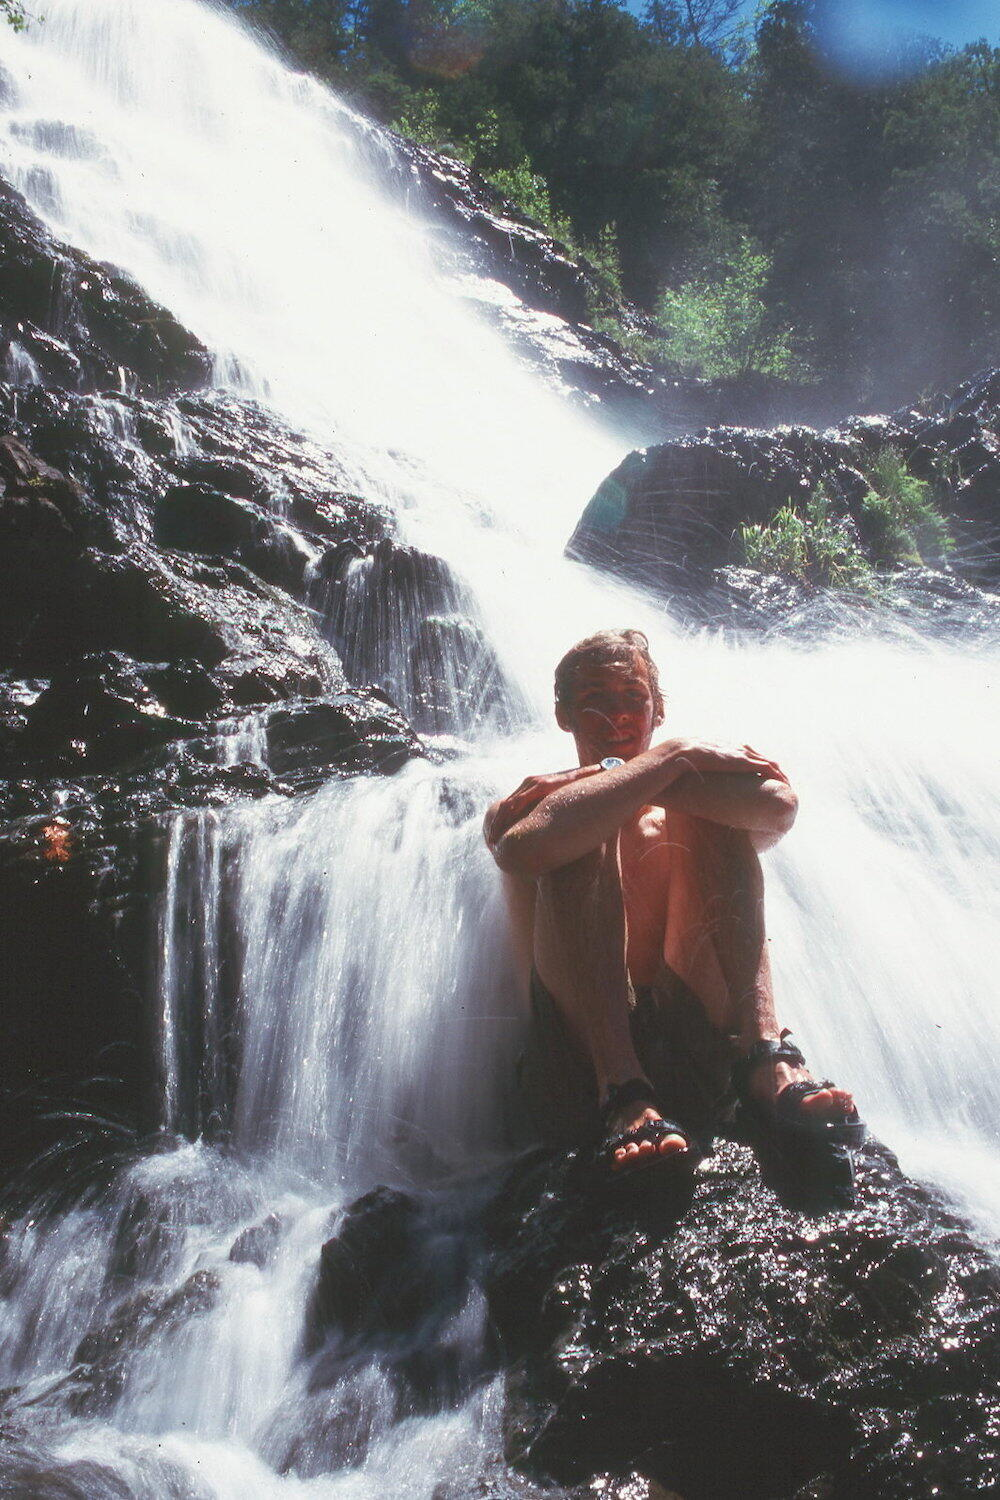 Man sitting on rock at bottom of waterfalls